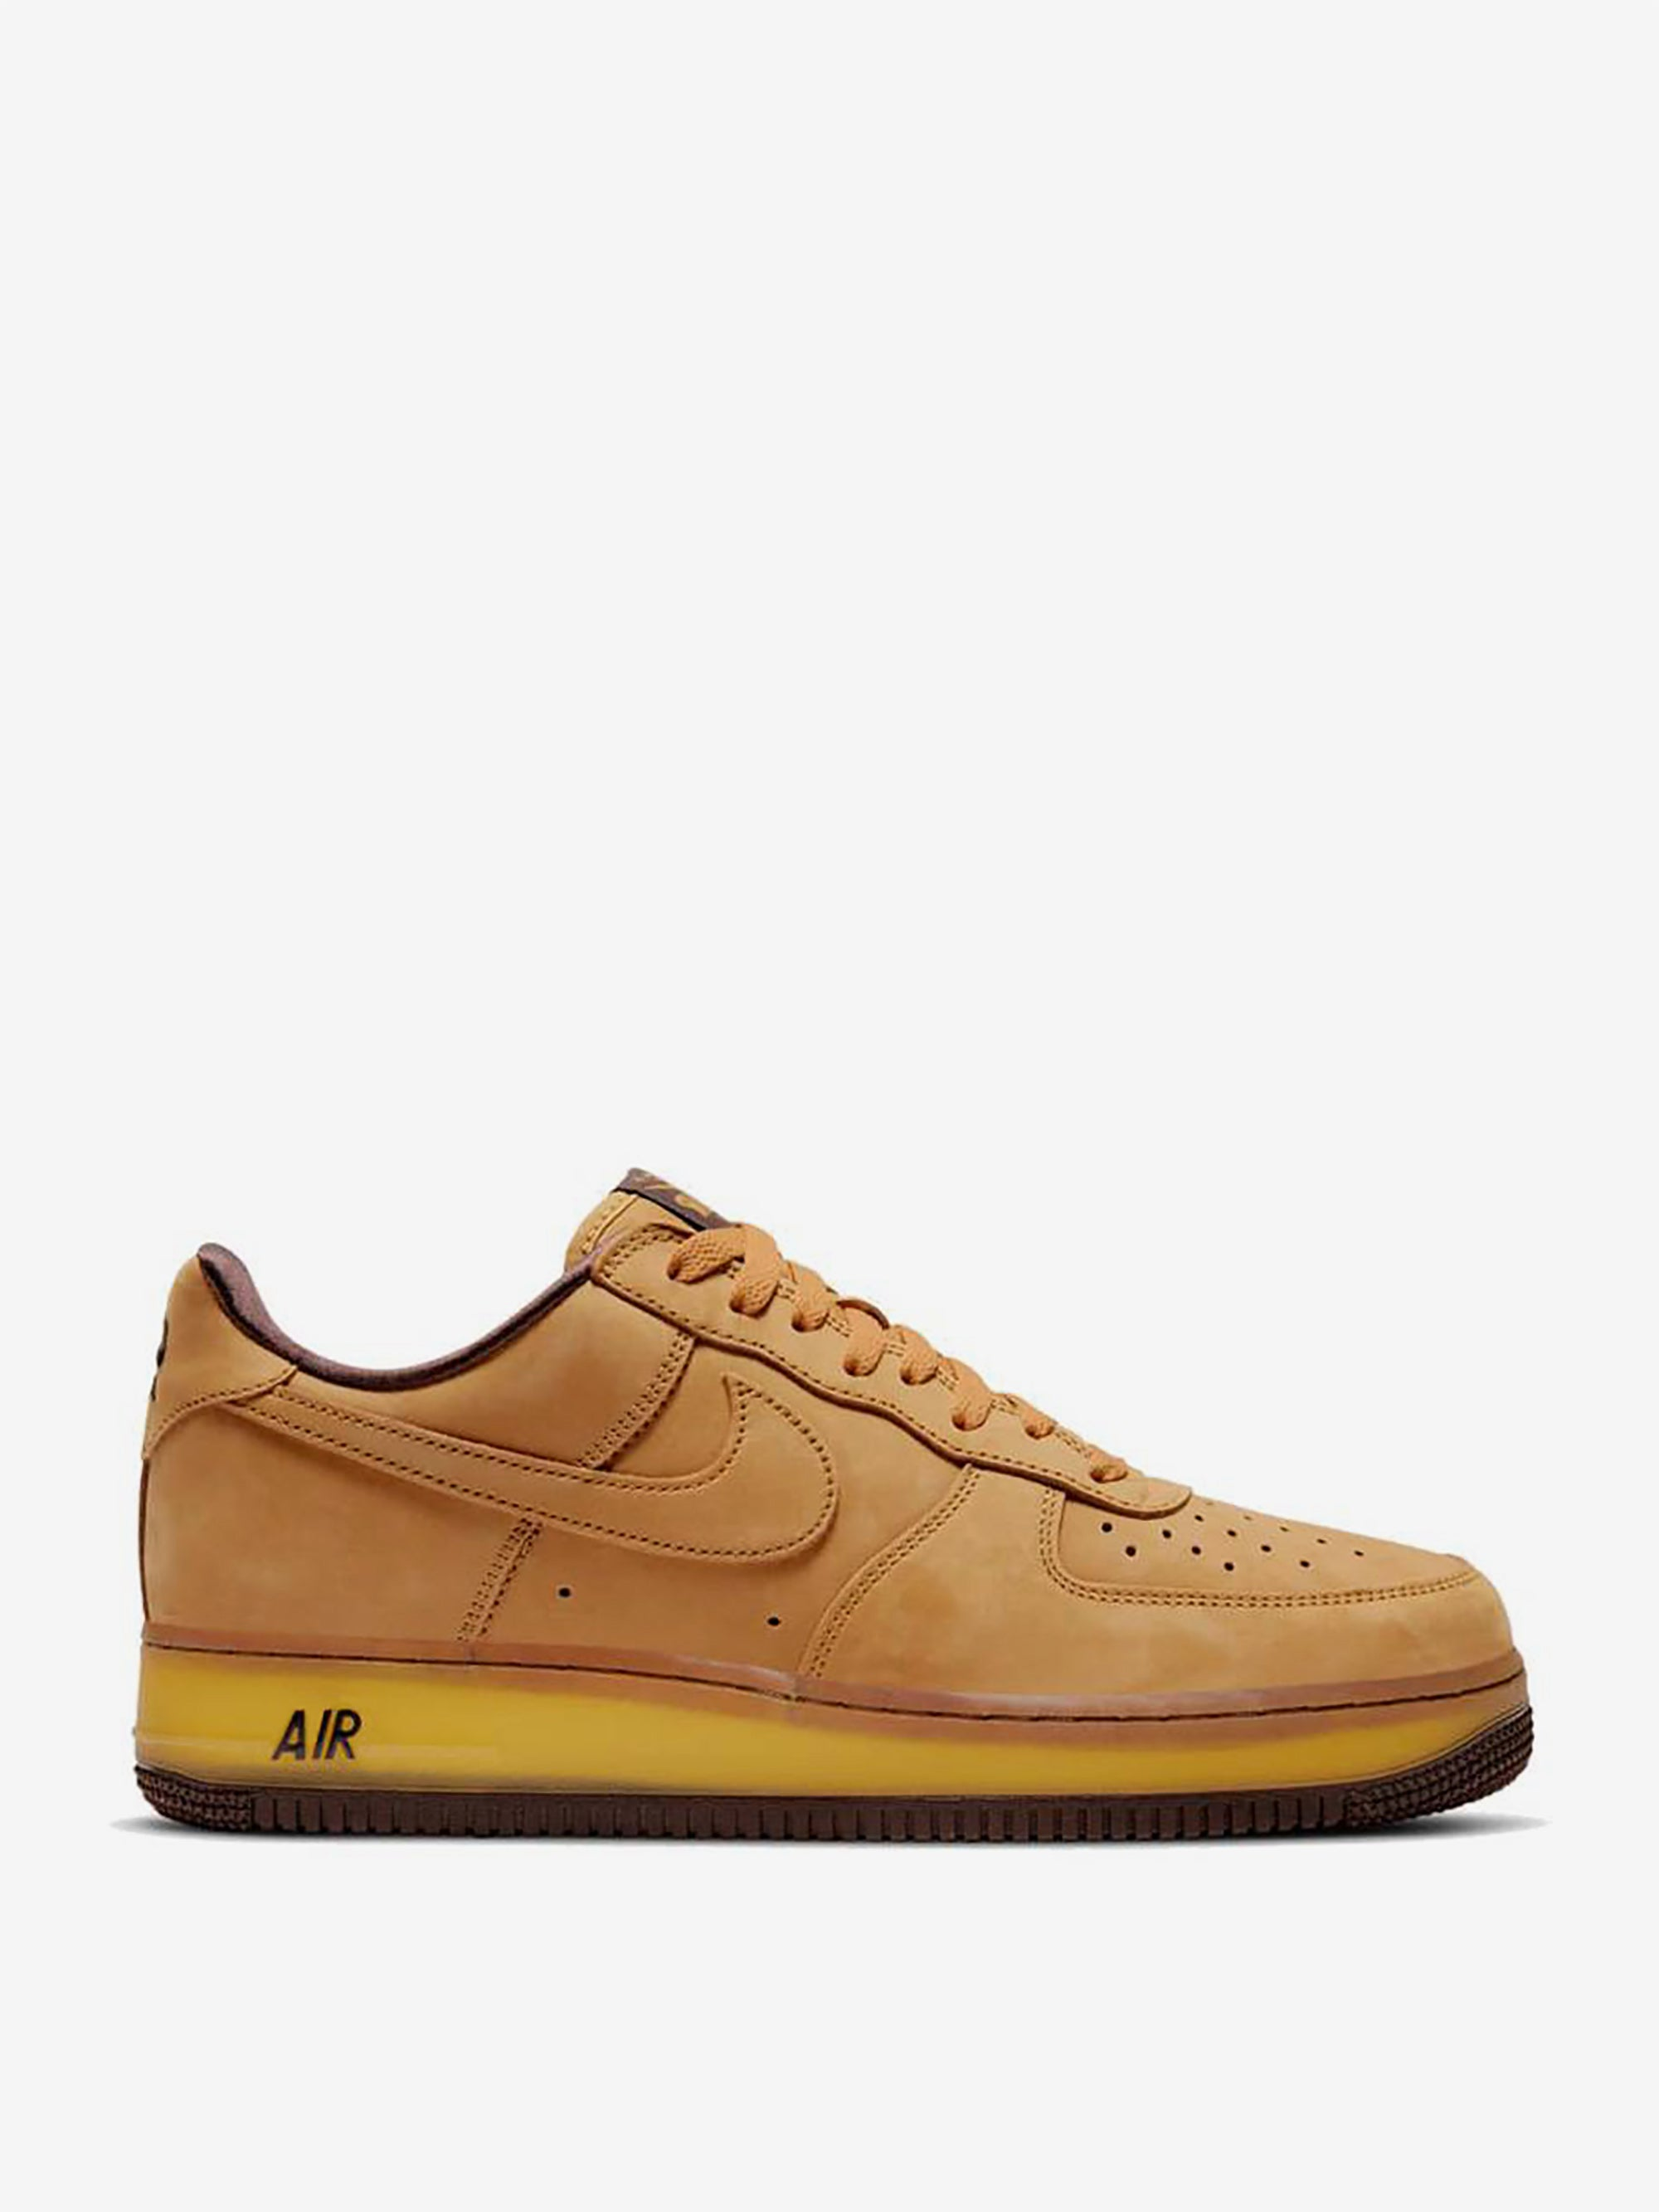 Nike Air Force 1 Low Retro SP - Wheat